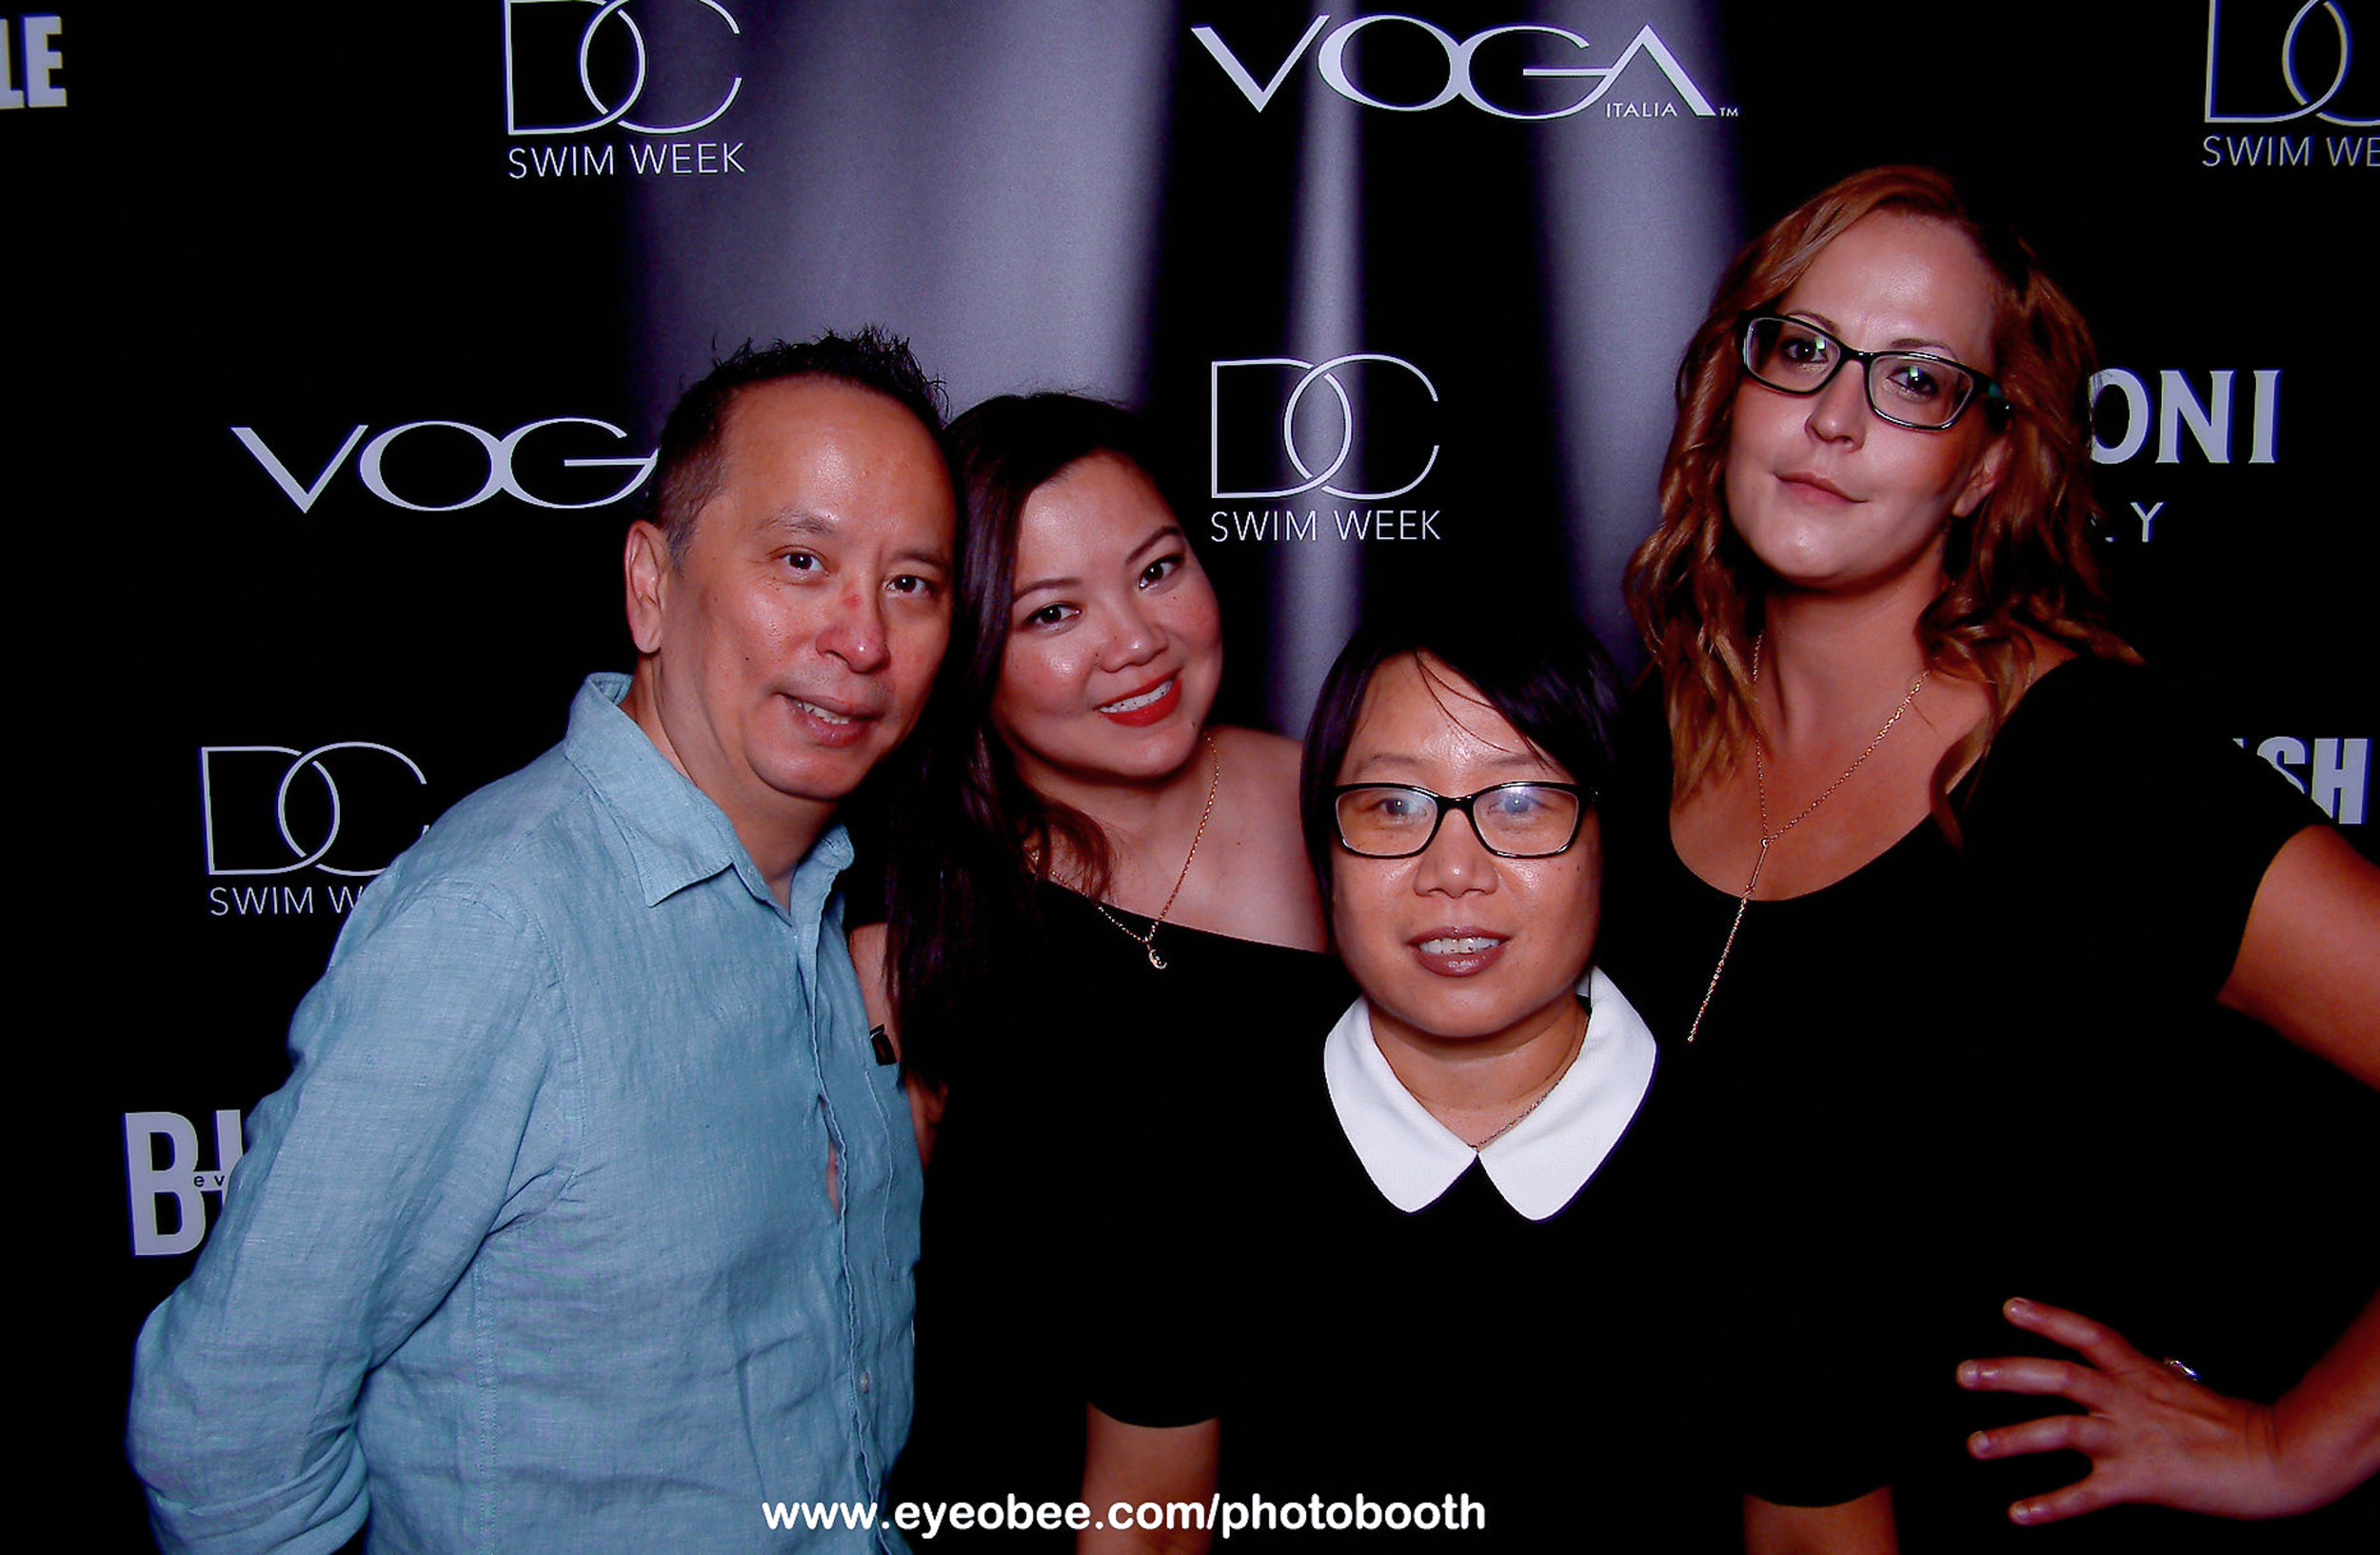 eyeobee PhotoBooth - DCSW-310.jpg